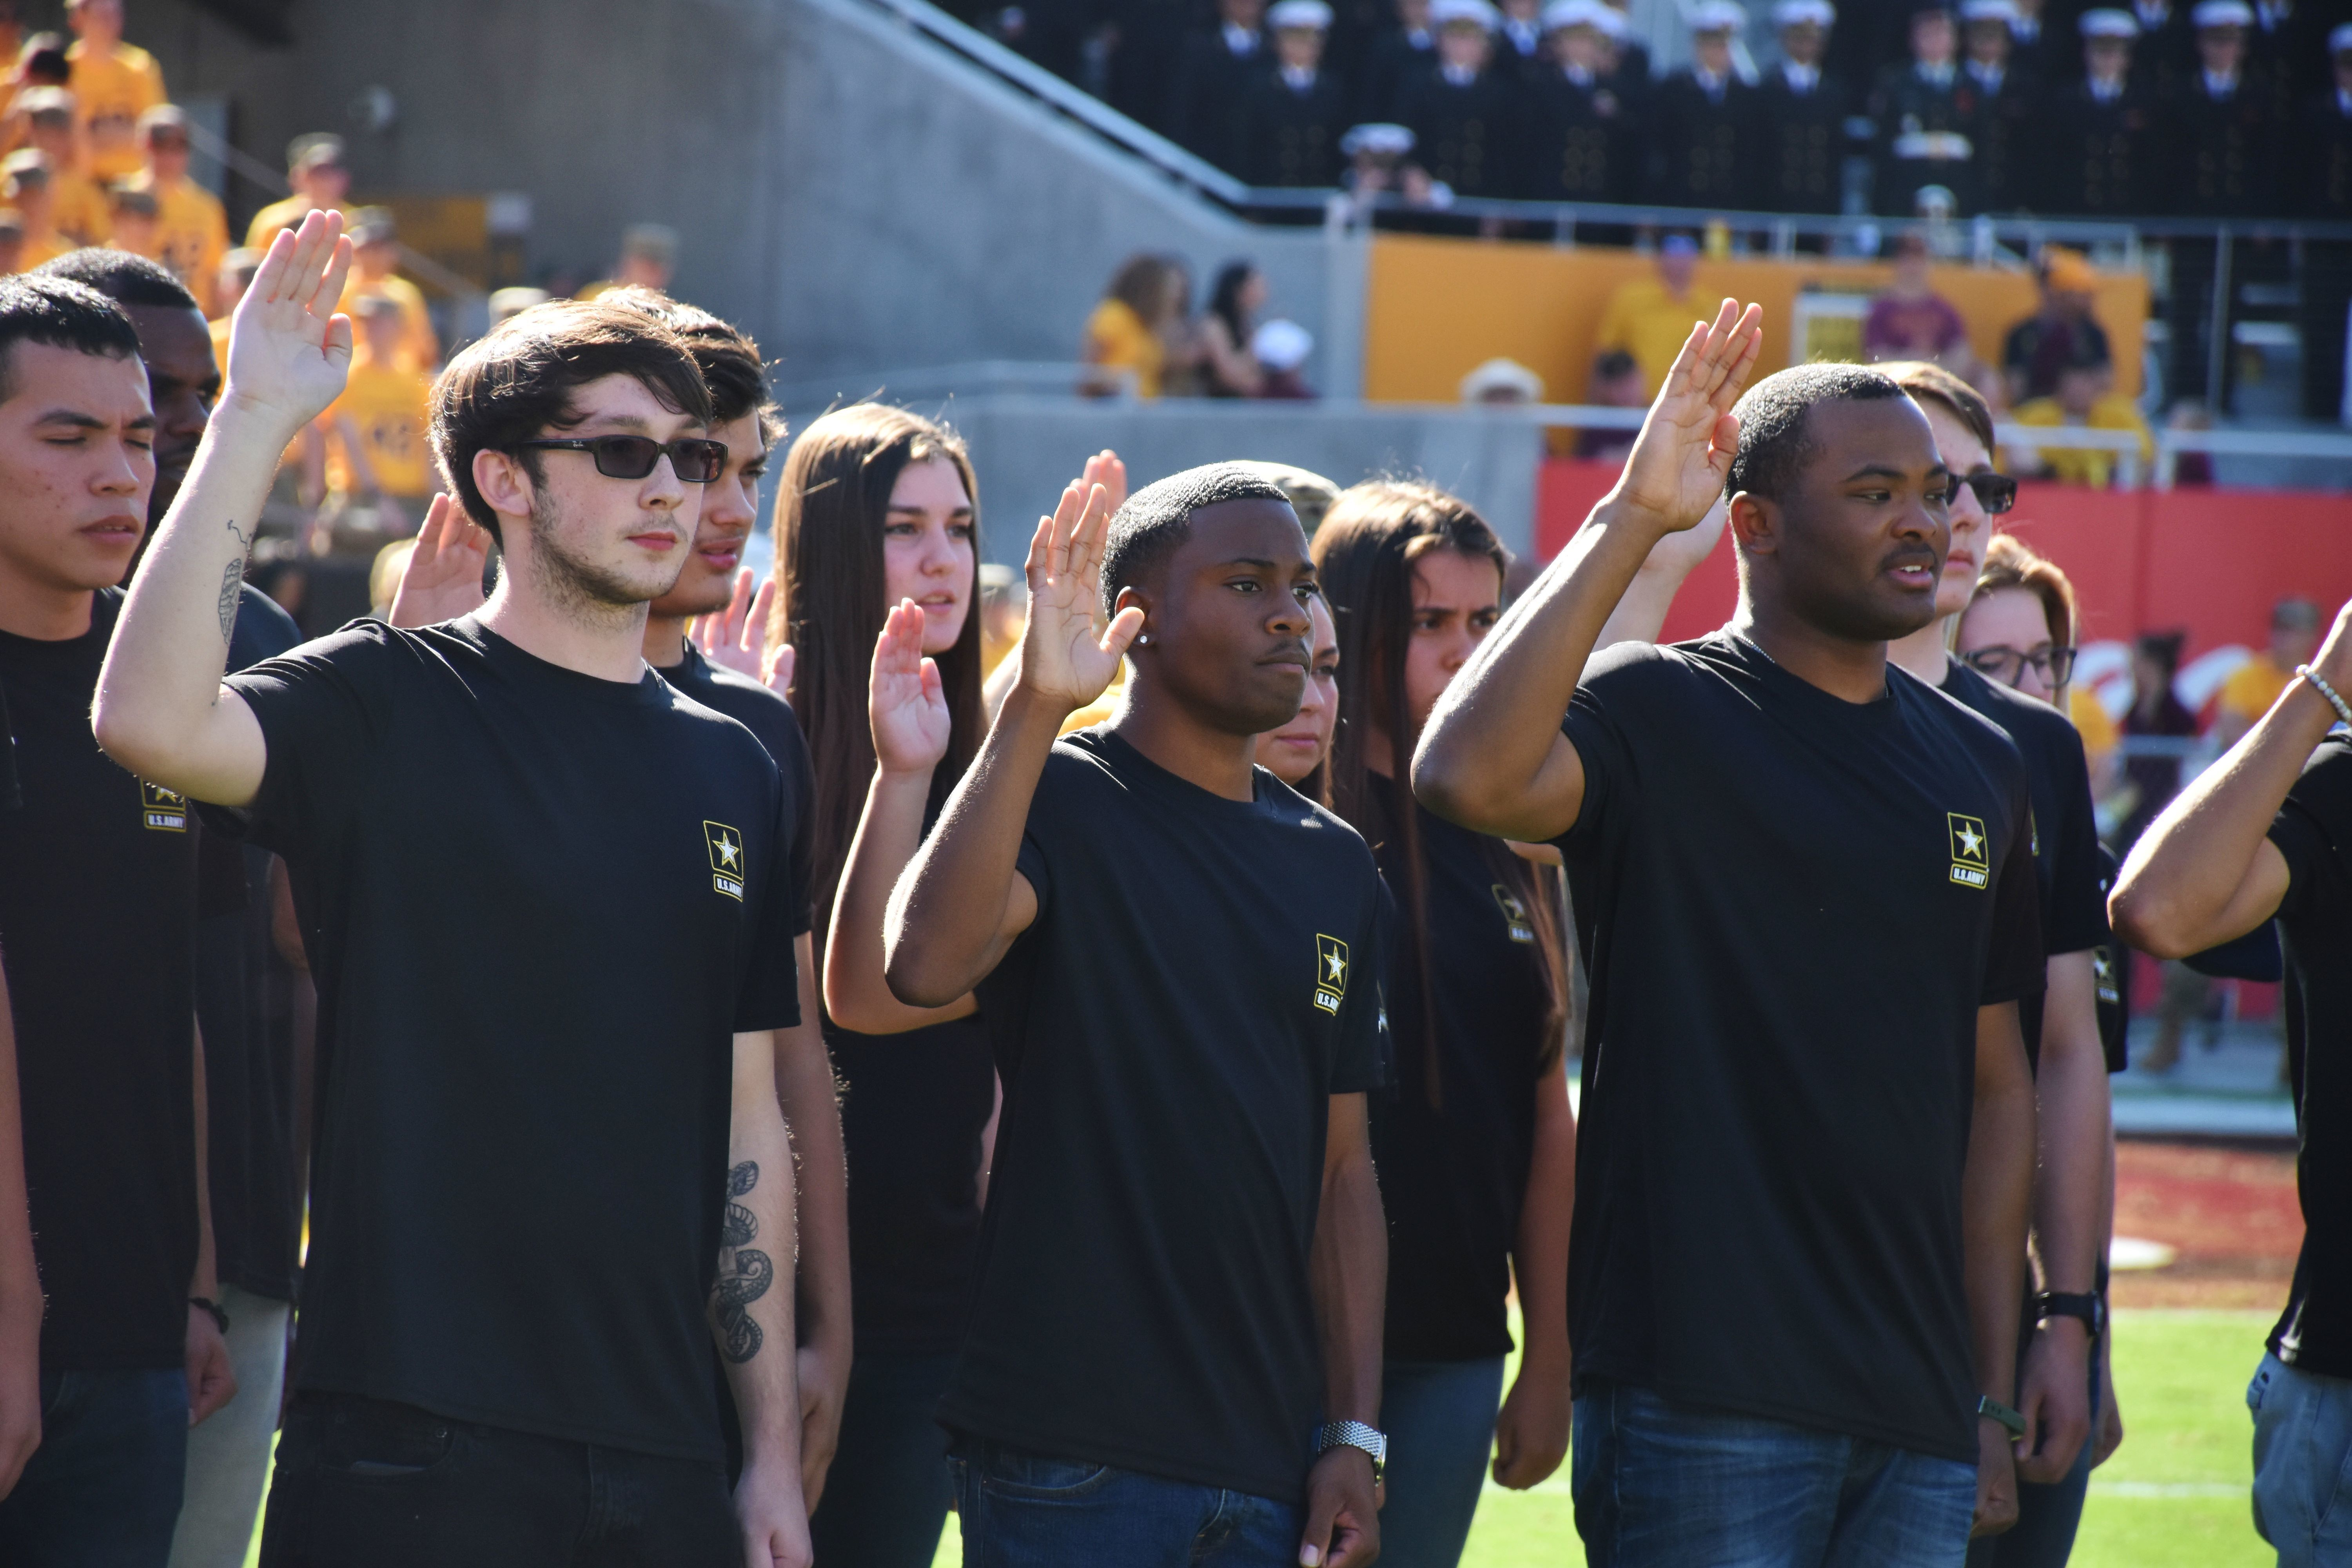 Future soldiers participate in a mass oath of enlistment ceremony during half-time at Arizona State University's Salute to Service college football game on Nov. 10, 2018, in Tempe, Arizona. (Alun Thomas/Army)